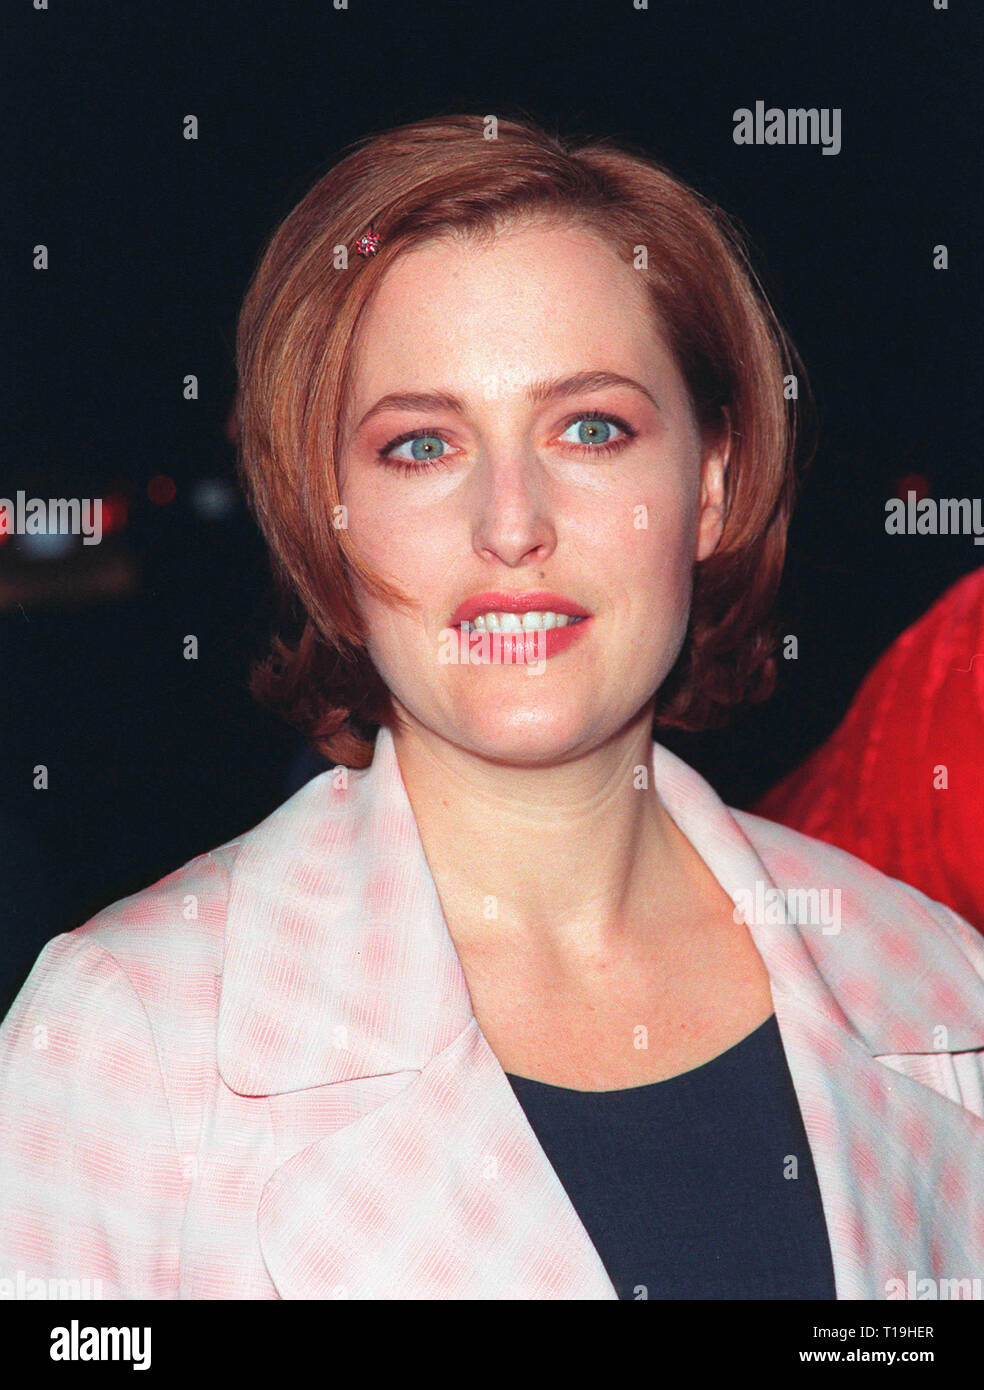 LOS ANGELES, CA - December 10, 1998: 'X-Files' star GILLIAN ANDERSON at world premiere of her new movie 'Playing by Heart' in which she stars with Sean Connery.  © Paul Smith / Featureflash - Stock Image